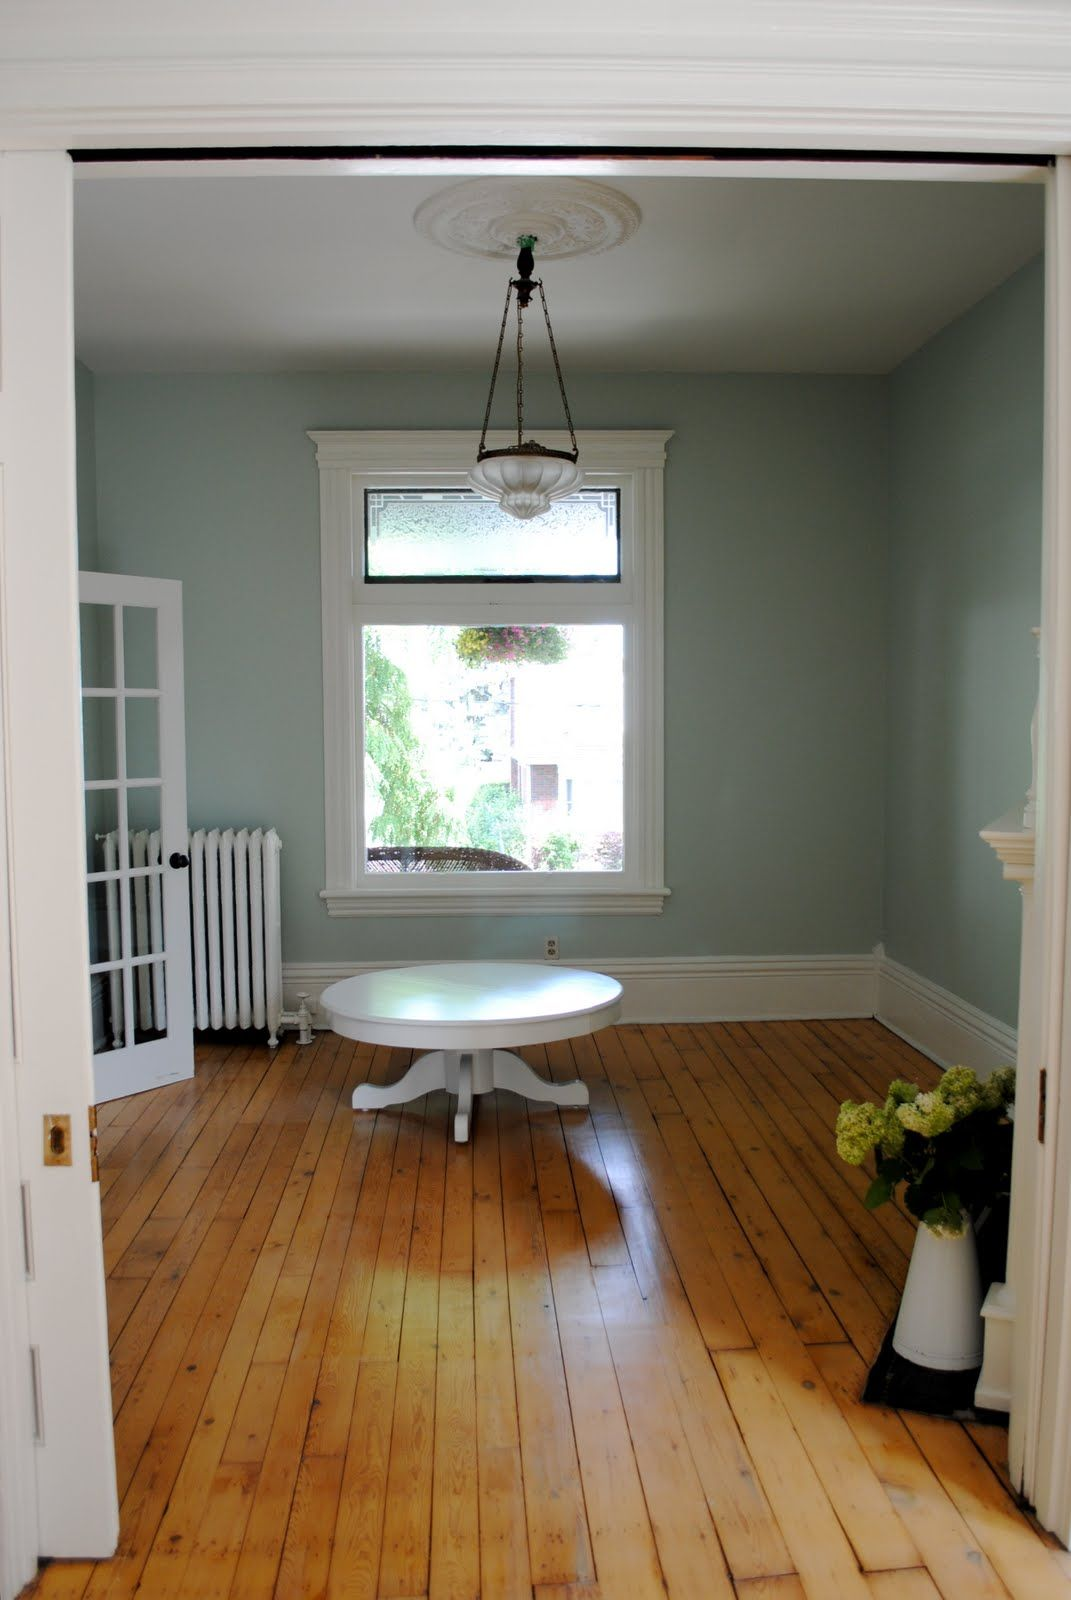 Paint color valspar clothesline fresh bedroom - Bedroom wall paint colors ...